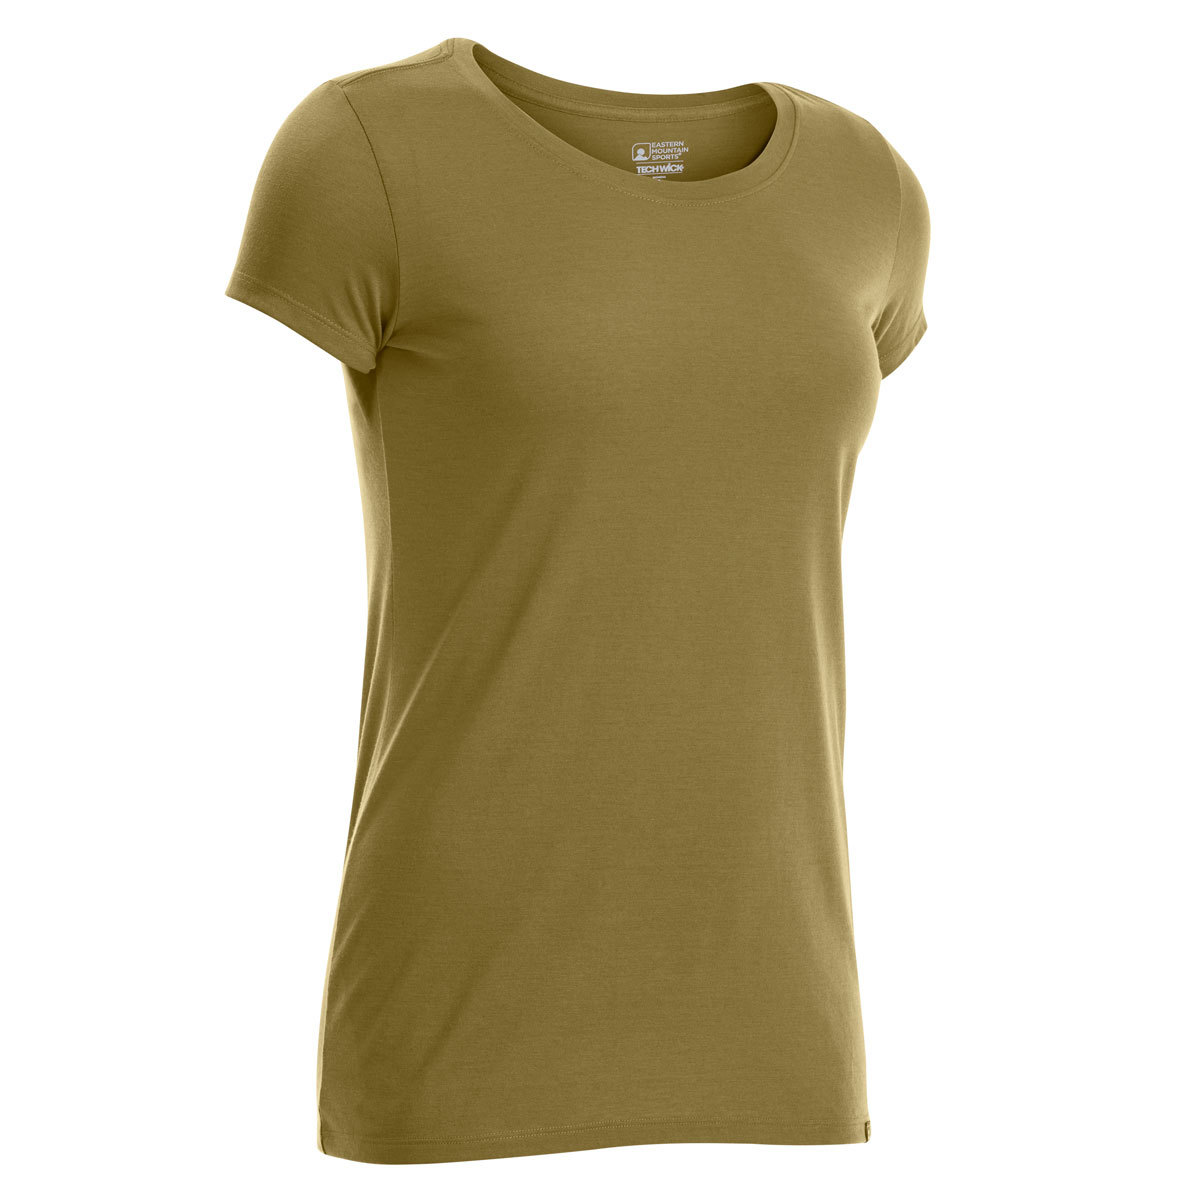 Ems Women's Techwick Vital Crew Short-Sleeve Tee - Green, M